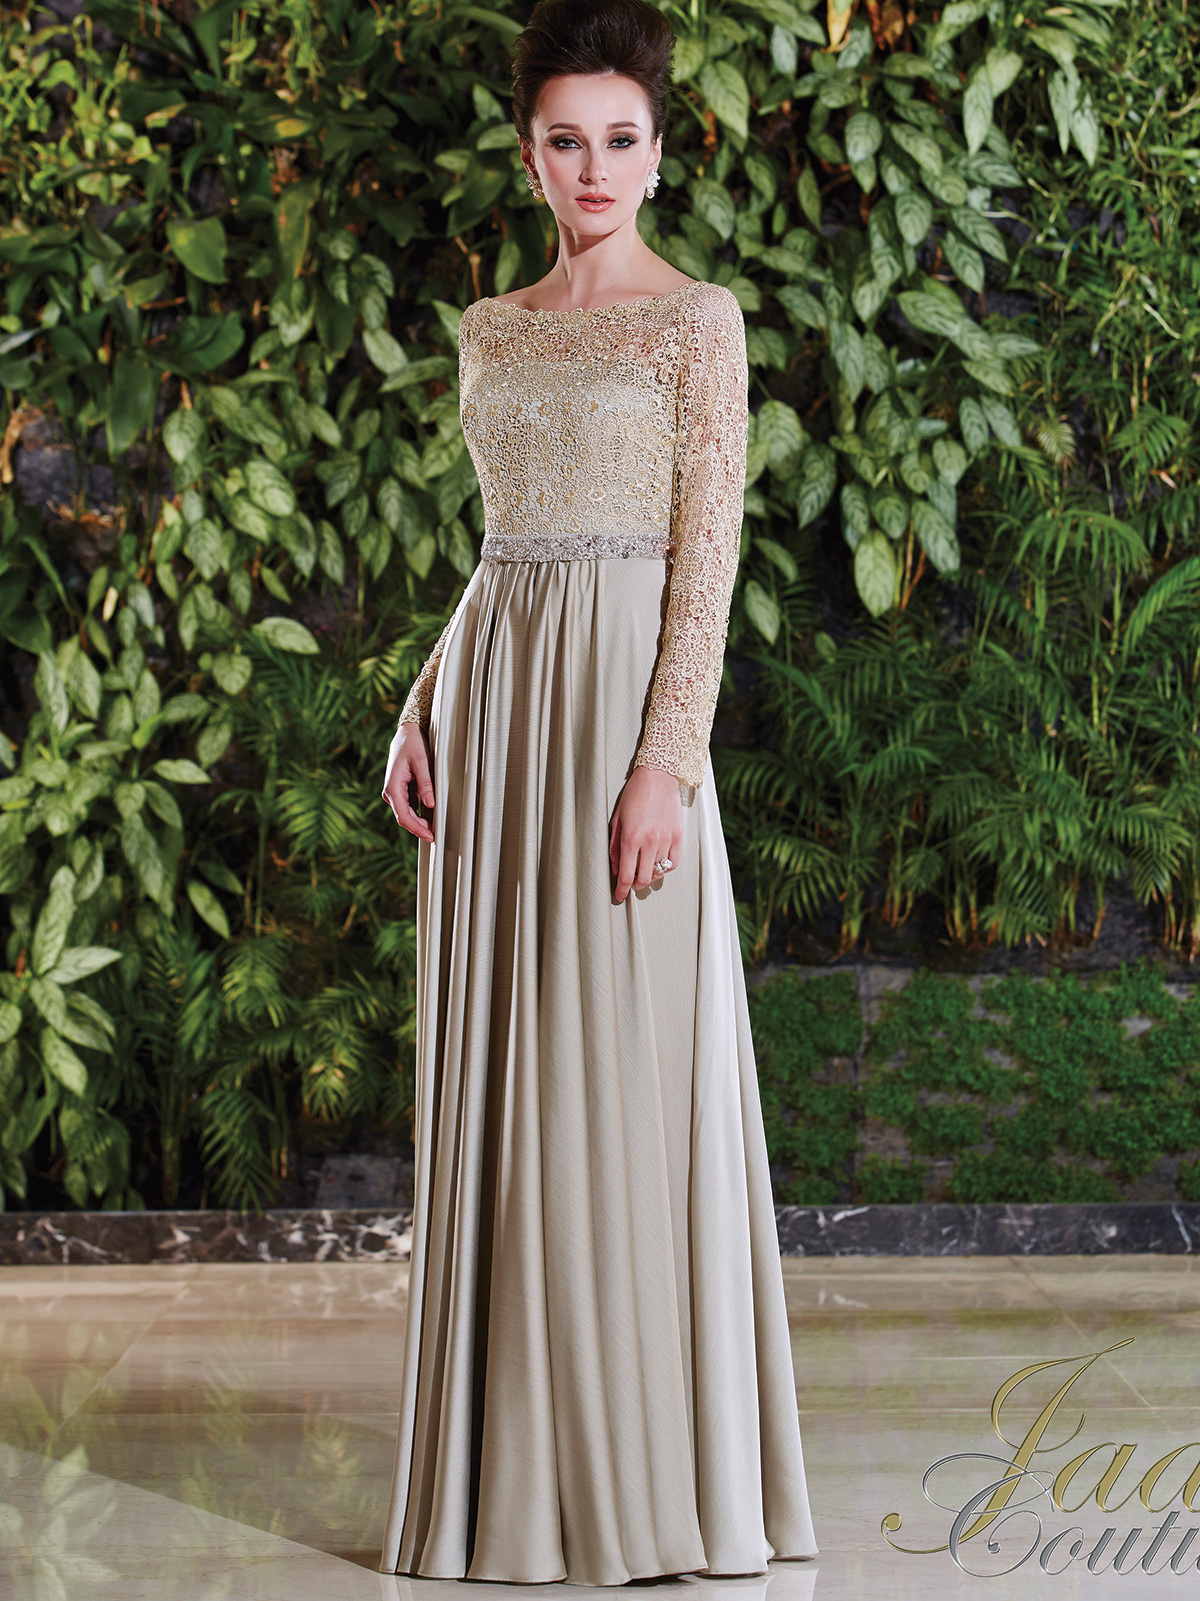 Da Vinci Mother Of The Bride Dresses - Ocodea.com